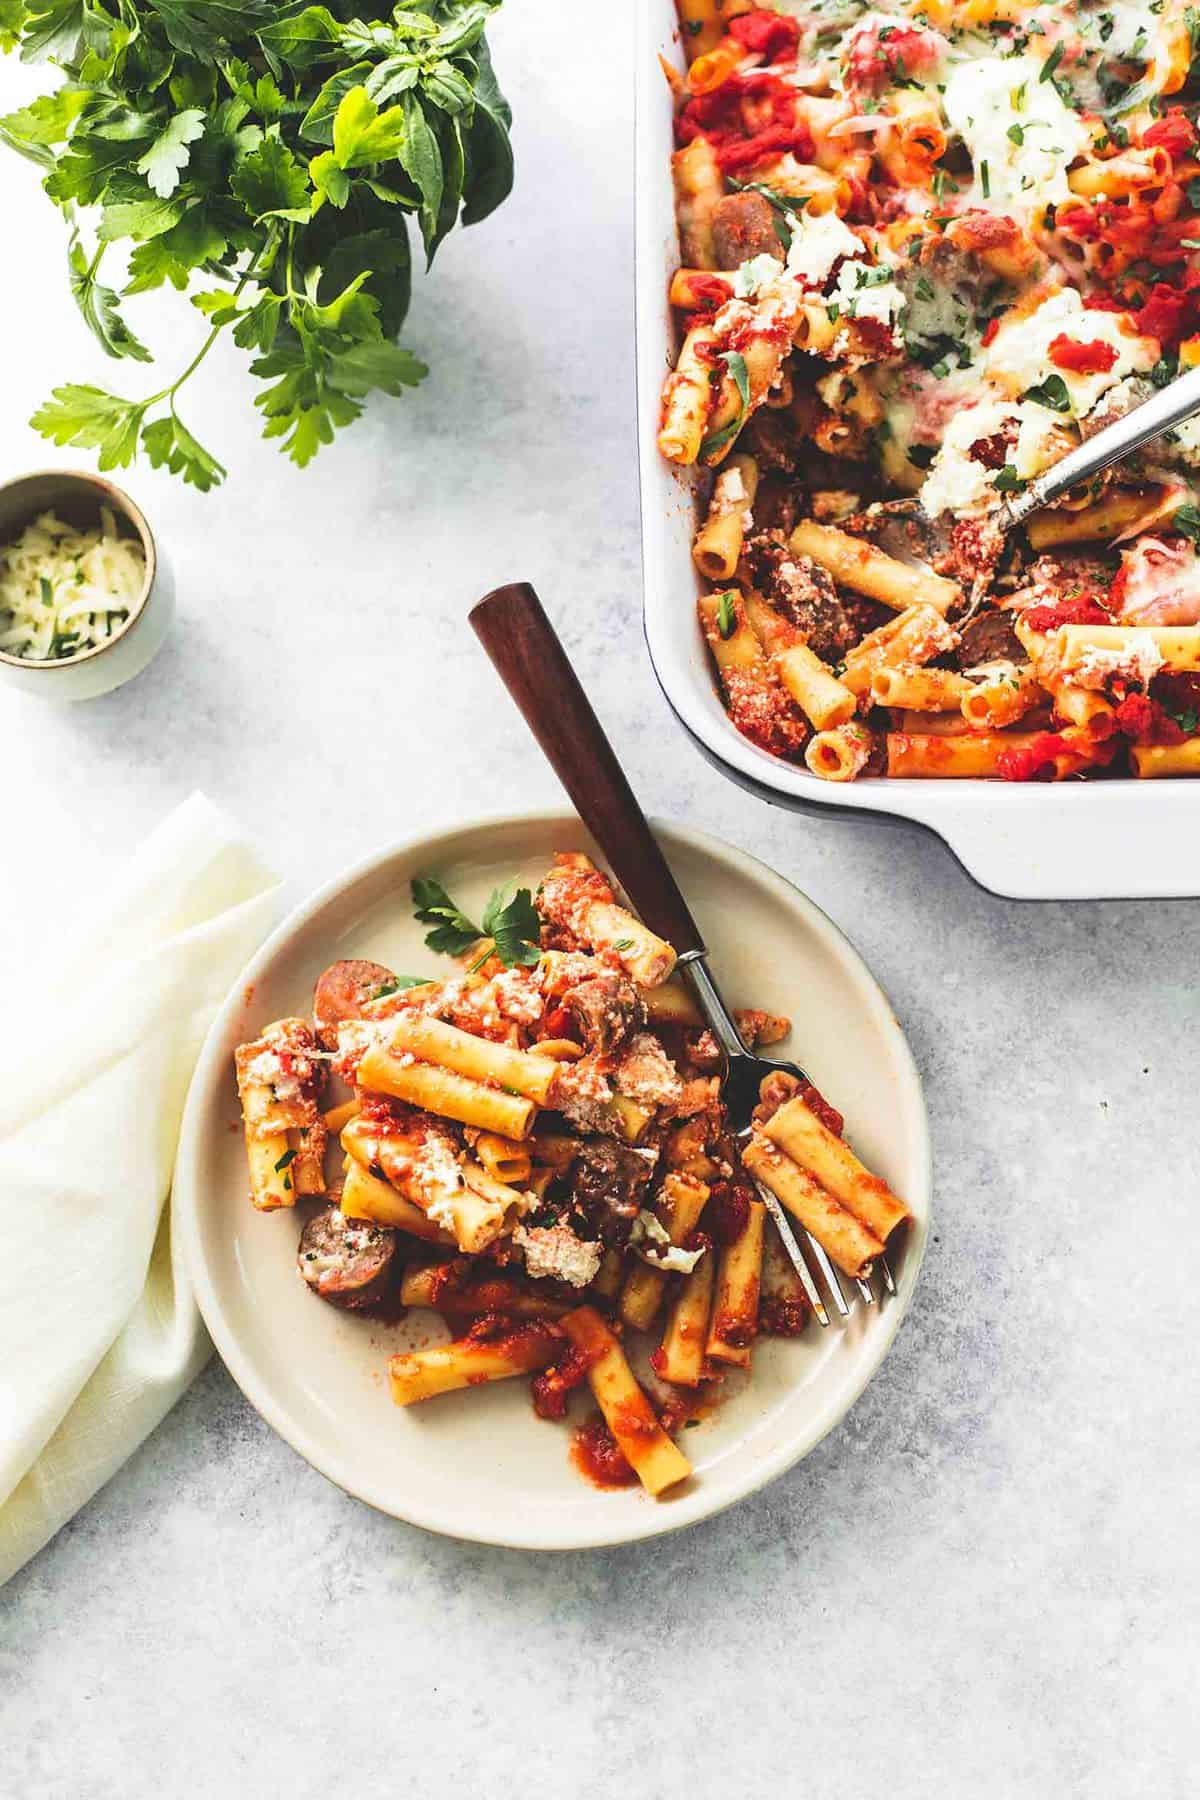 Baked Ziti with Ricotta and Sausage easy dinner recipe | lecremedelacrumb.com